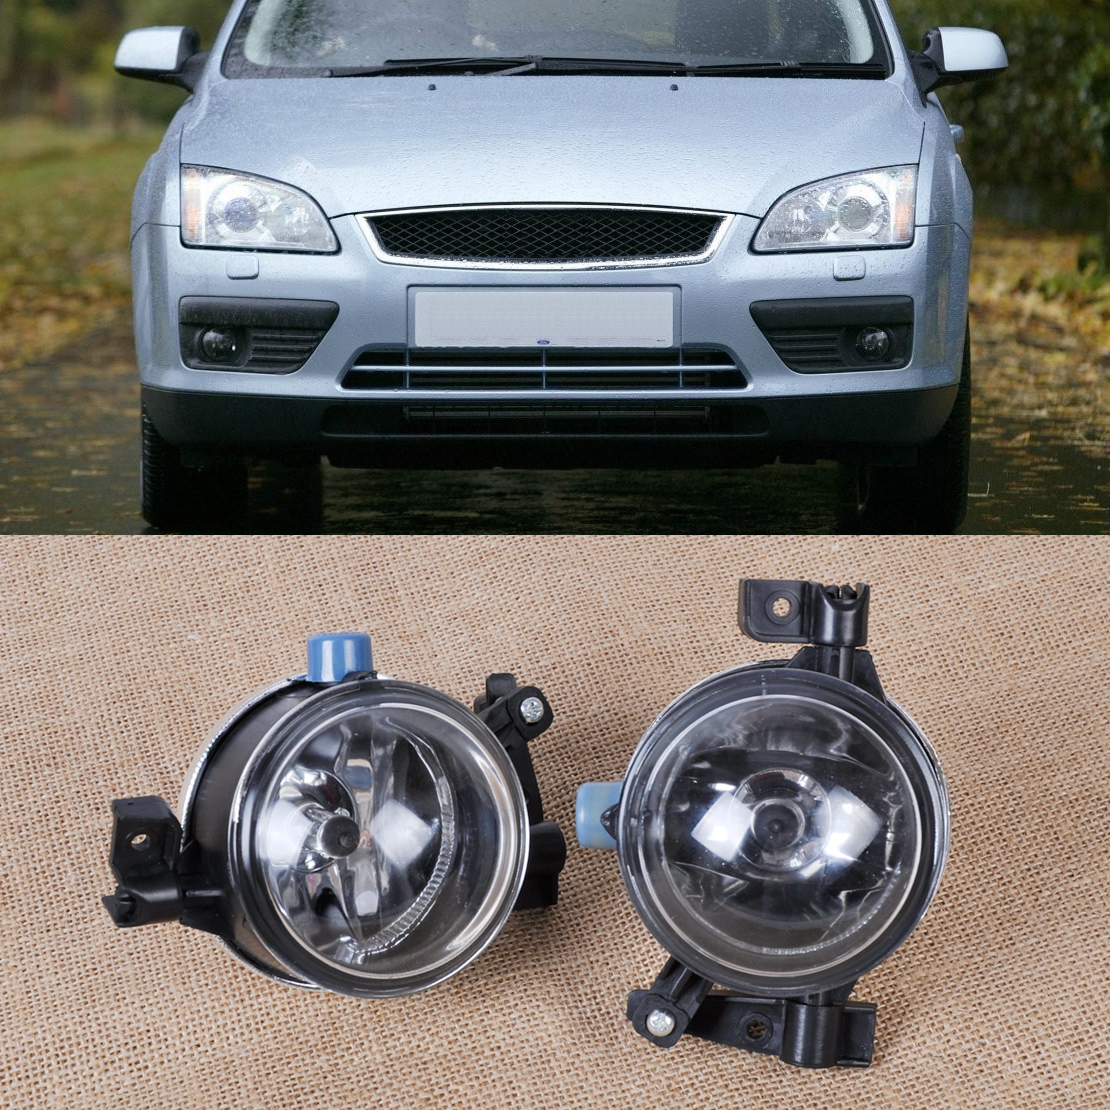 Beler 2ks Black Left + Right Side Mlhovka 55W 12V 3M51-15K201-AA 3M51-15K202-AA pro Ford Focus 2005 2006 2007